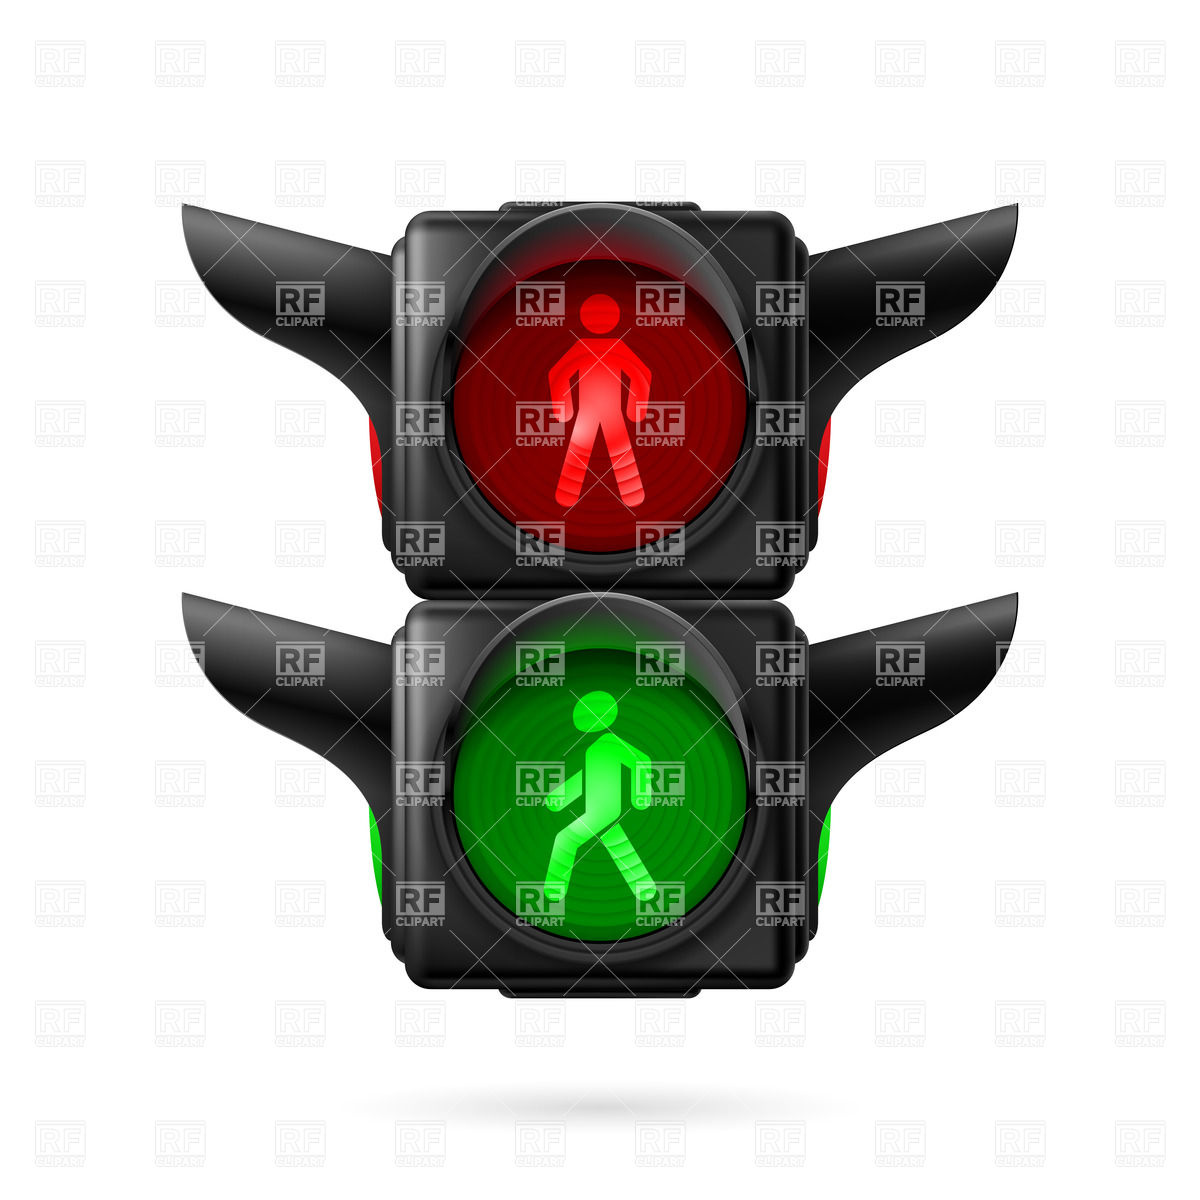 1200x1200 Pedestrian Traffic Light With Red And Green Lamps On Royalty Free